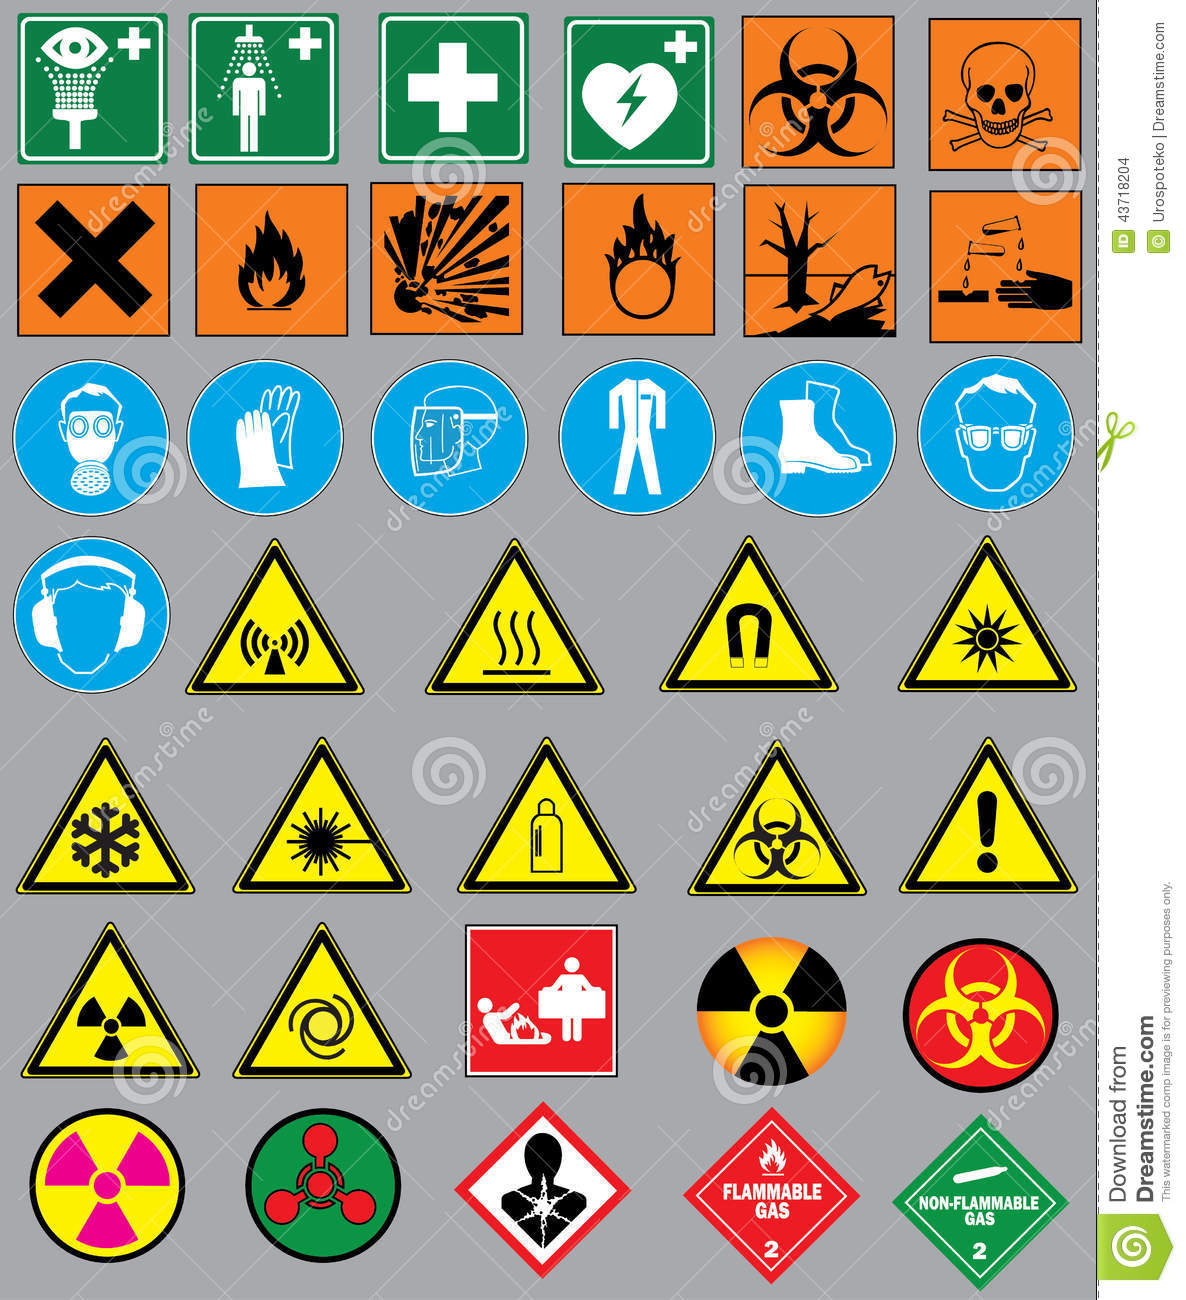 Chem M Laboratory Apparatus Safety Rules Symbols Science Worksheets Lab Chem Best Free